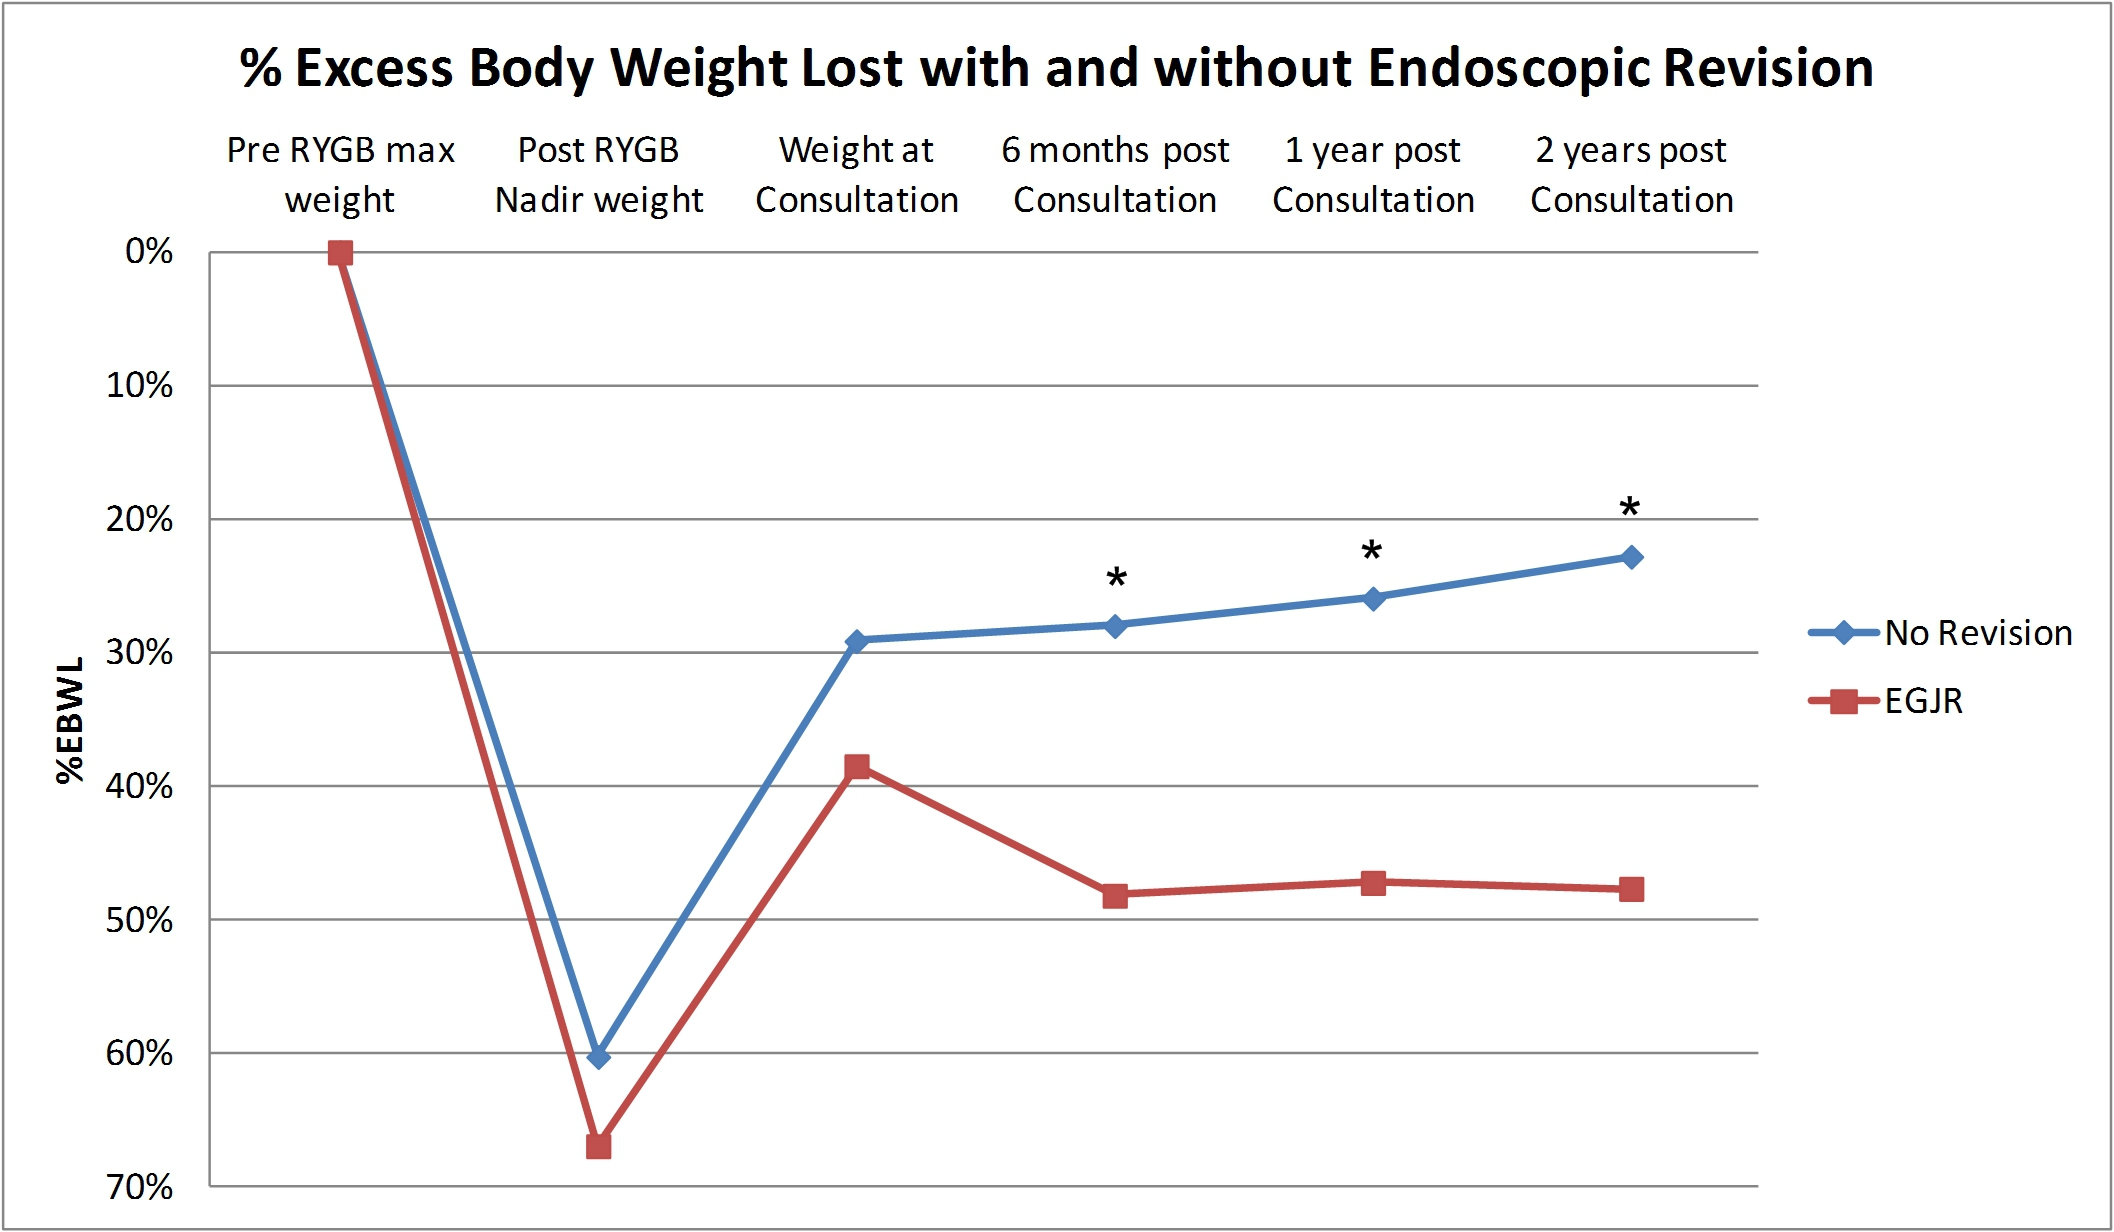 Ssat Endoscopic Gastrojejunal Revision Results In More Weight Loss